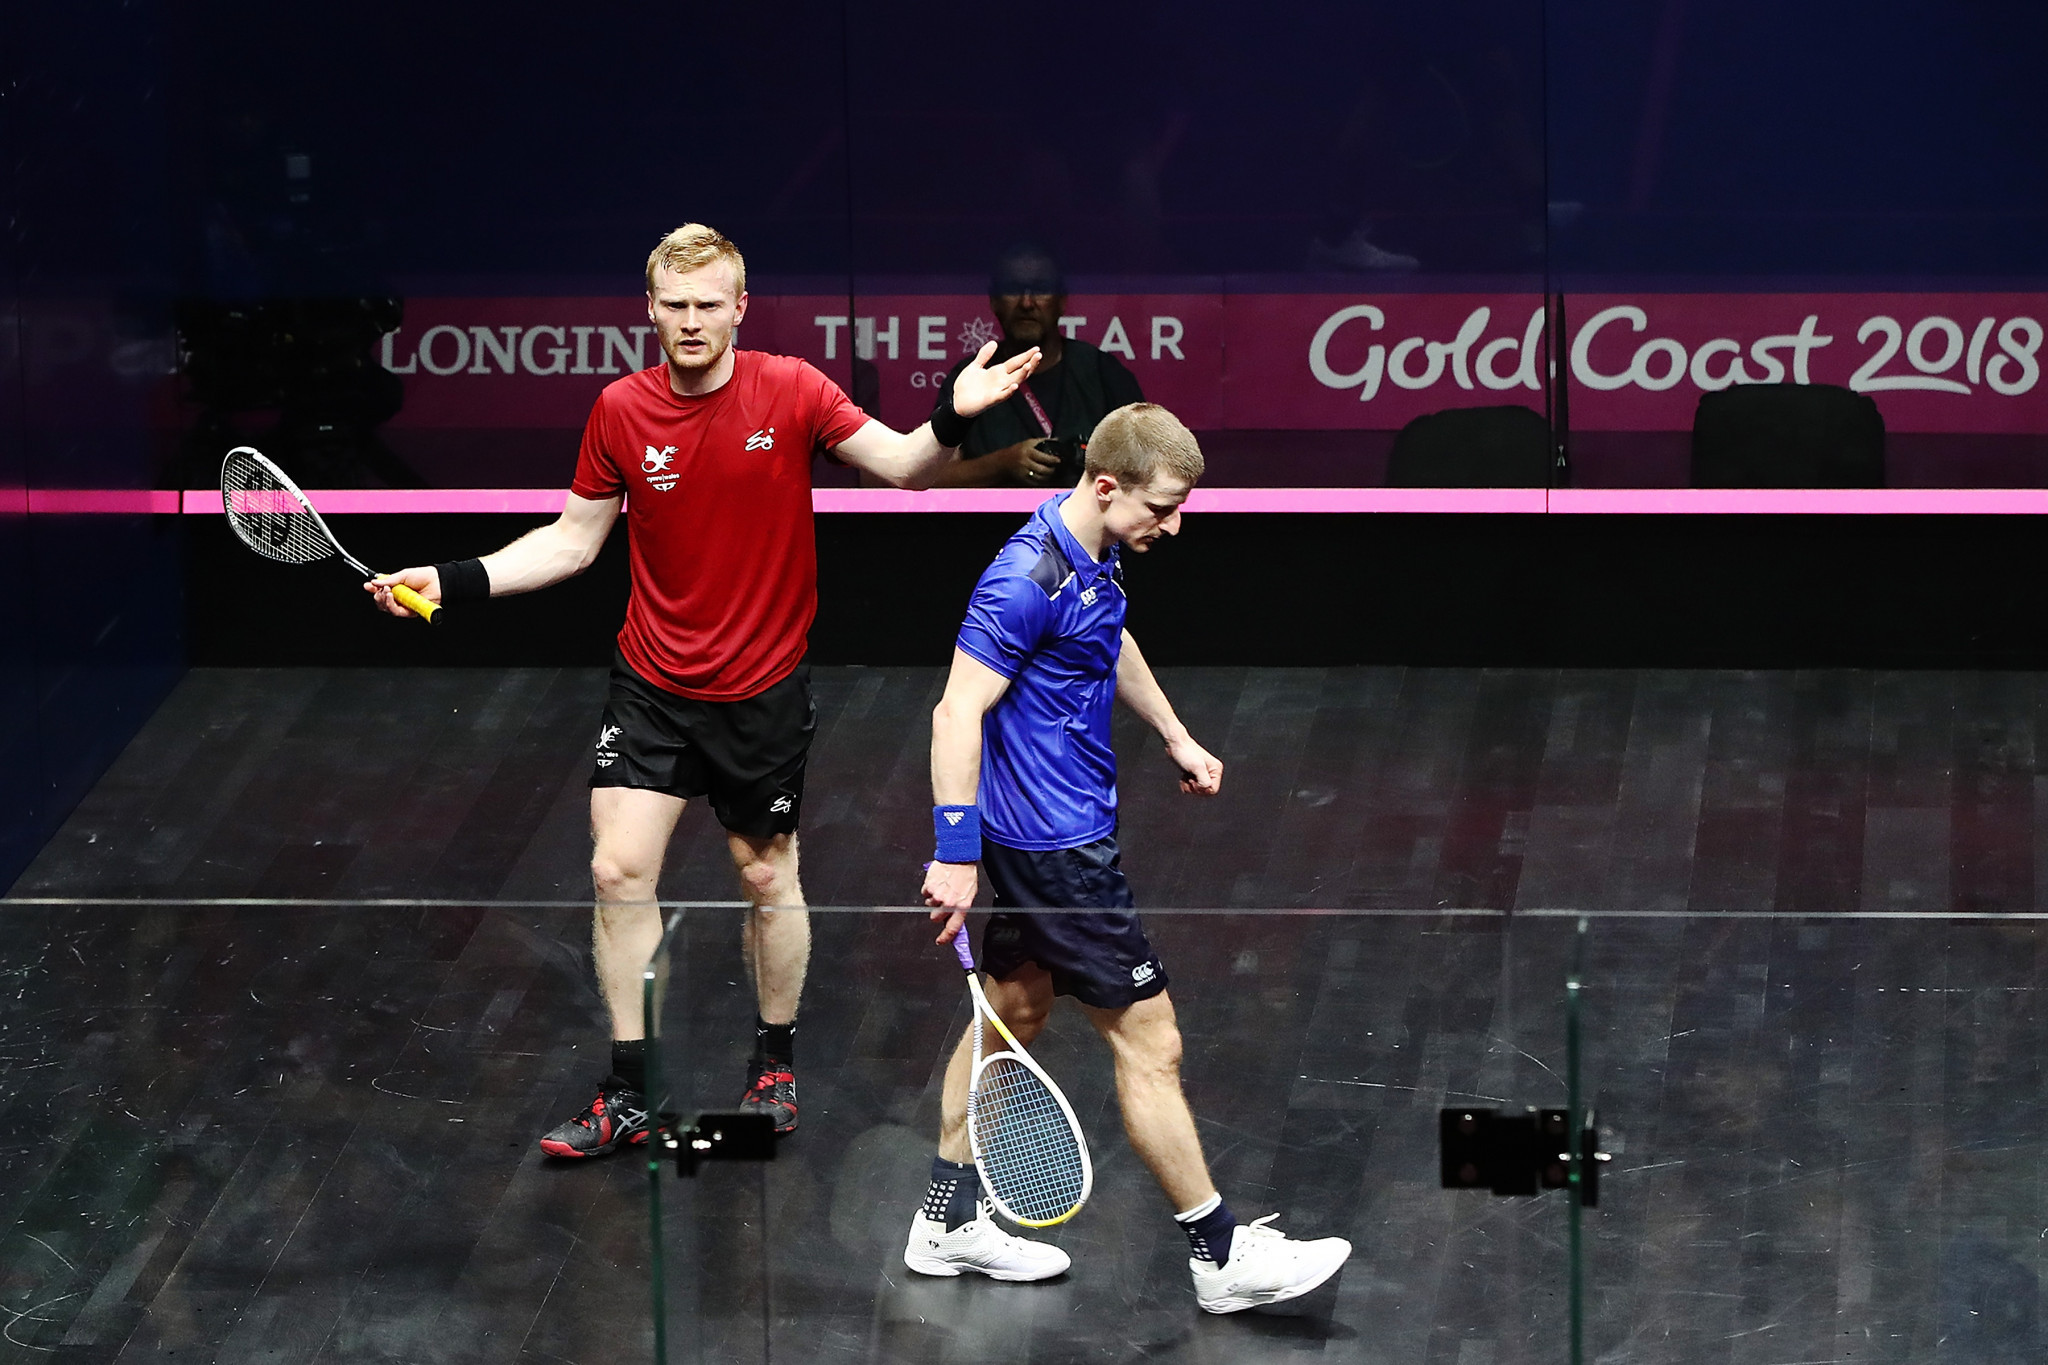 There are claims squash has an image problem because of dissent from players ©Getty Images